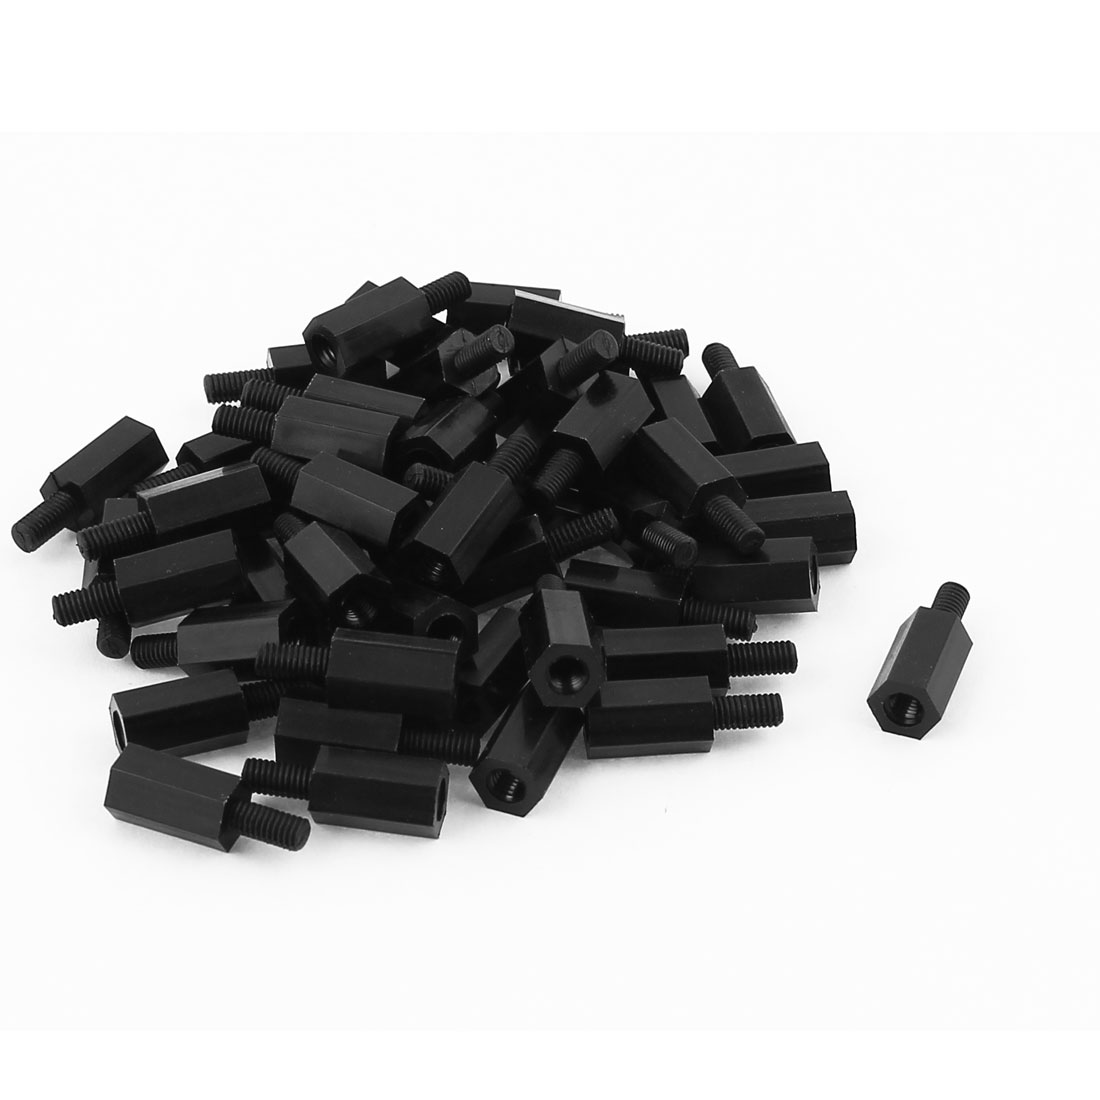 PCB Machine Board Nylon Insulating Hex Nut Hexagonal Thread Spacer M3x10mmx6mm 50pcs